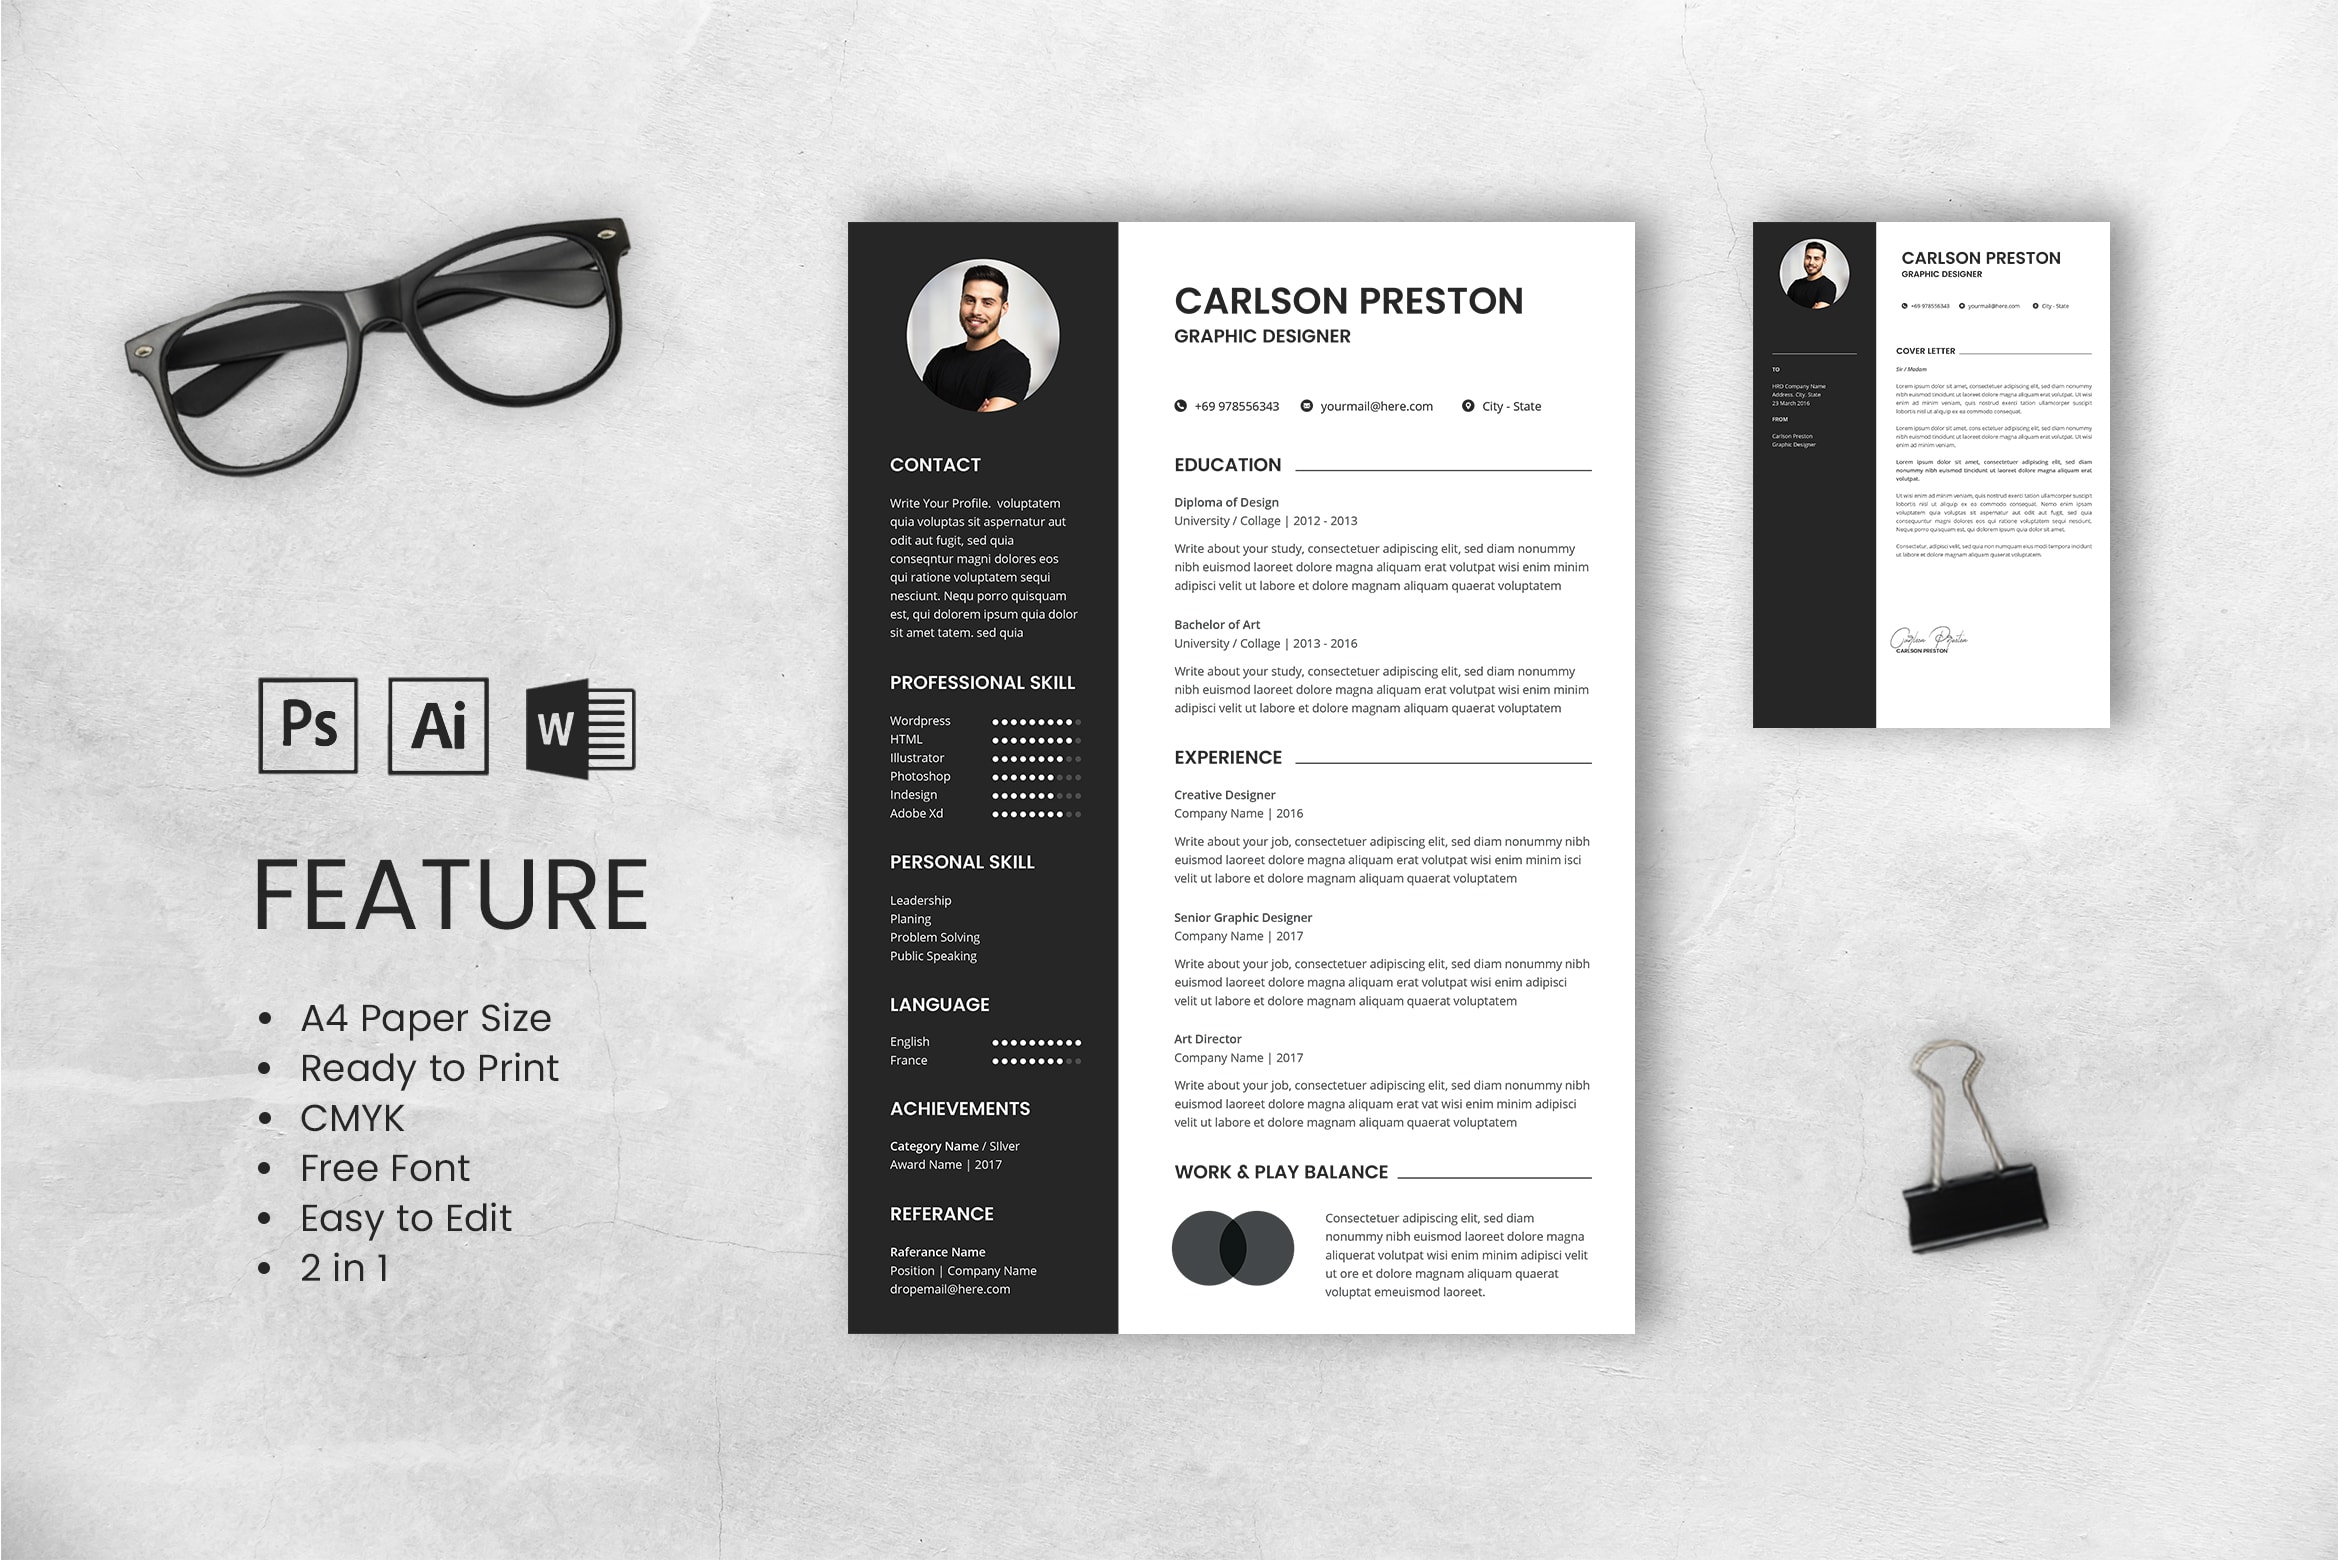 CV Resume – Graphic Designer Profile 10